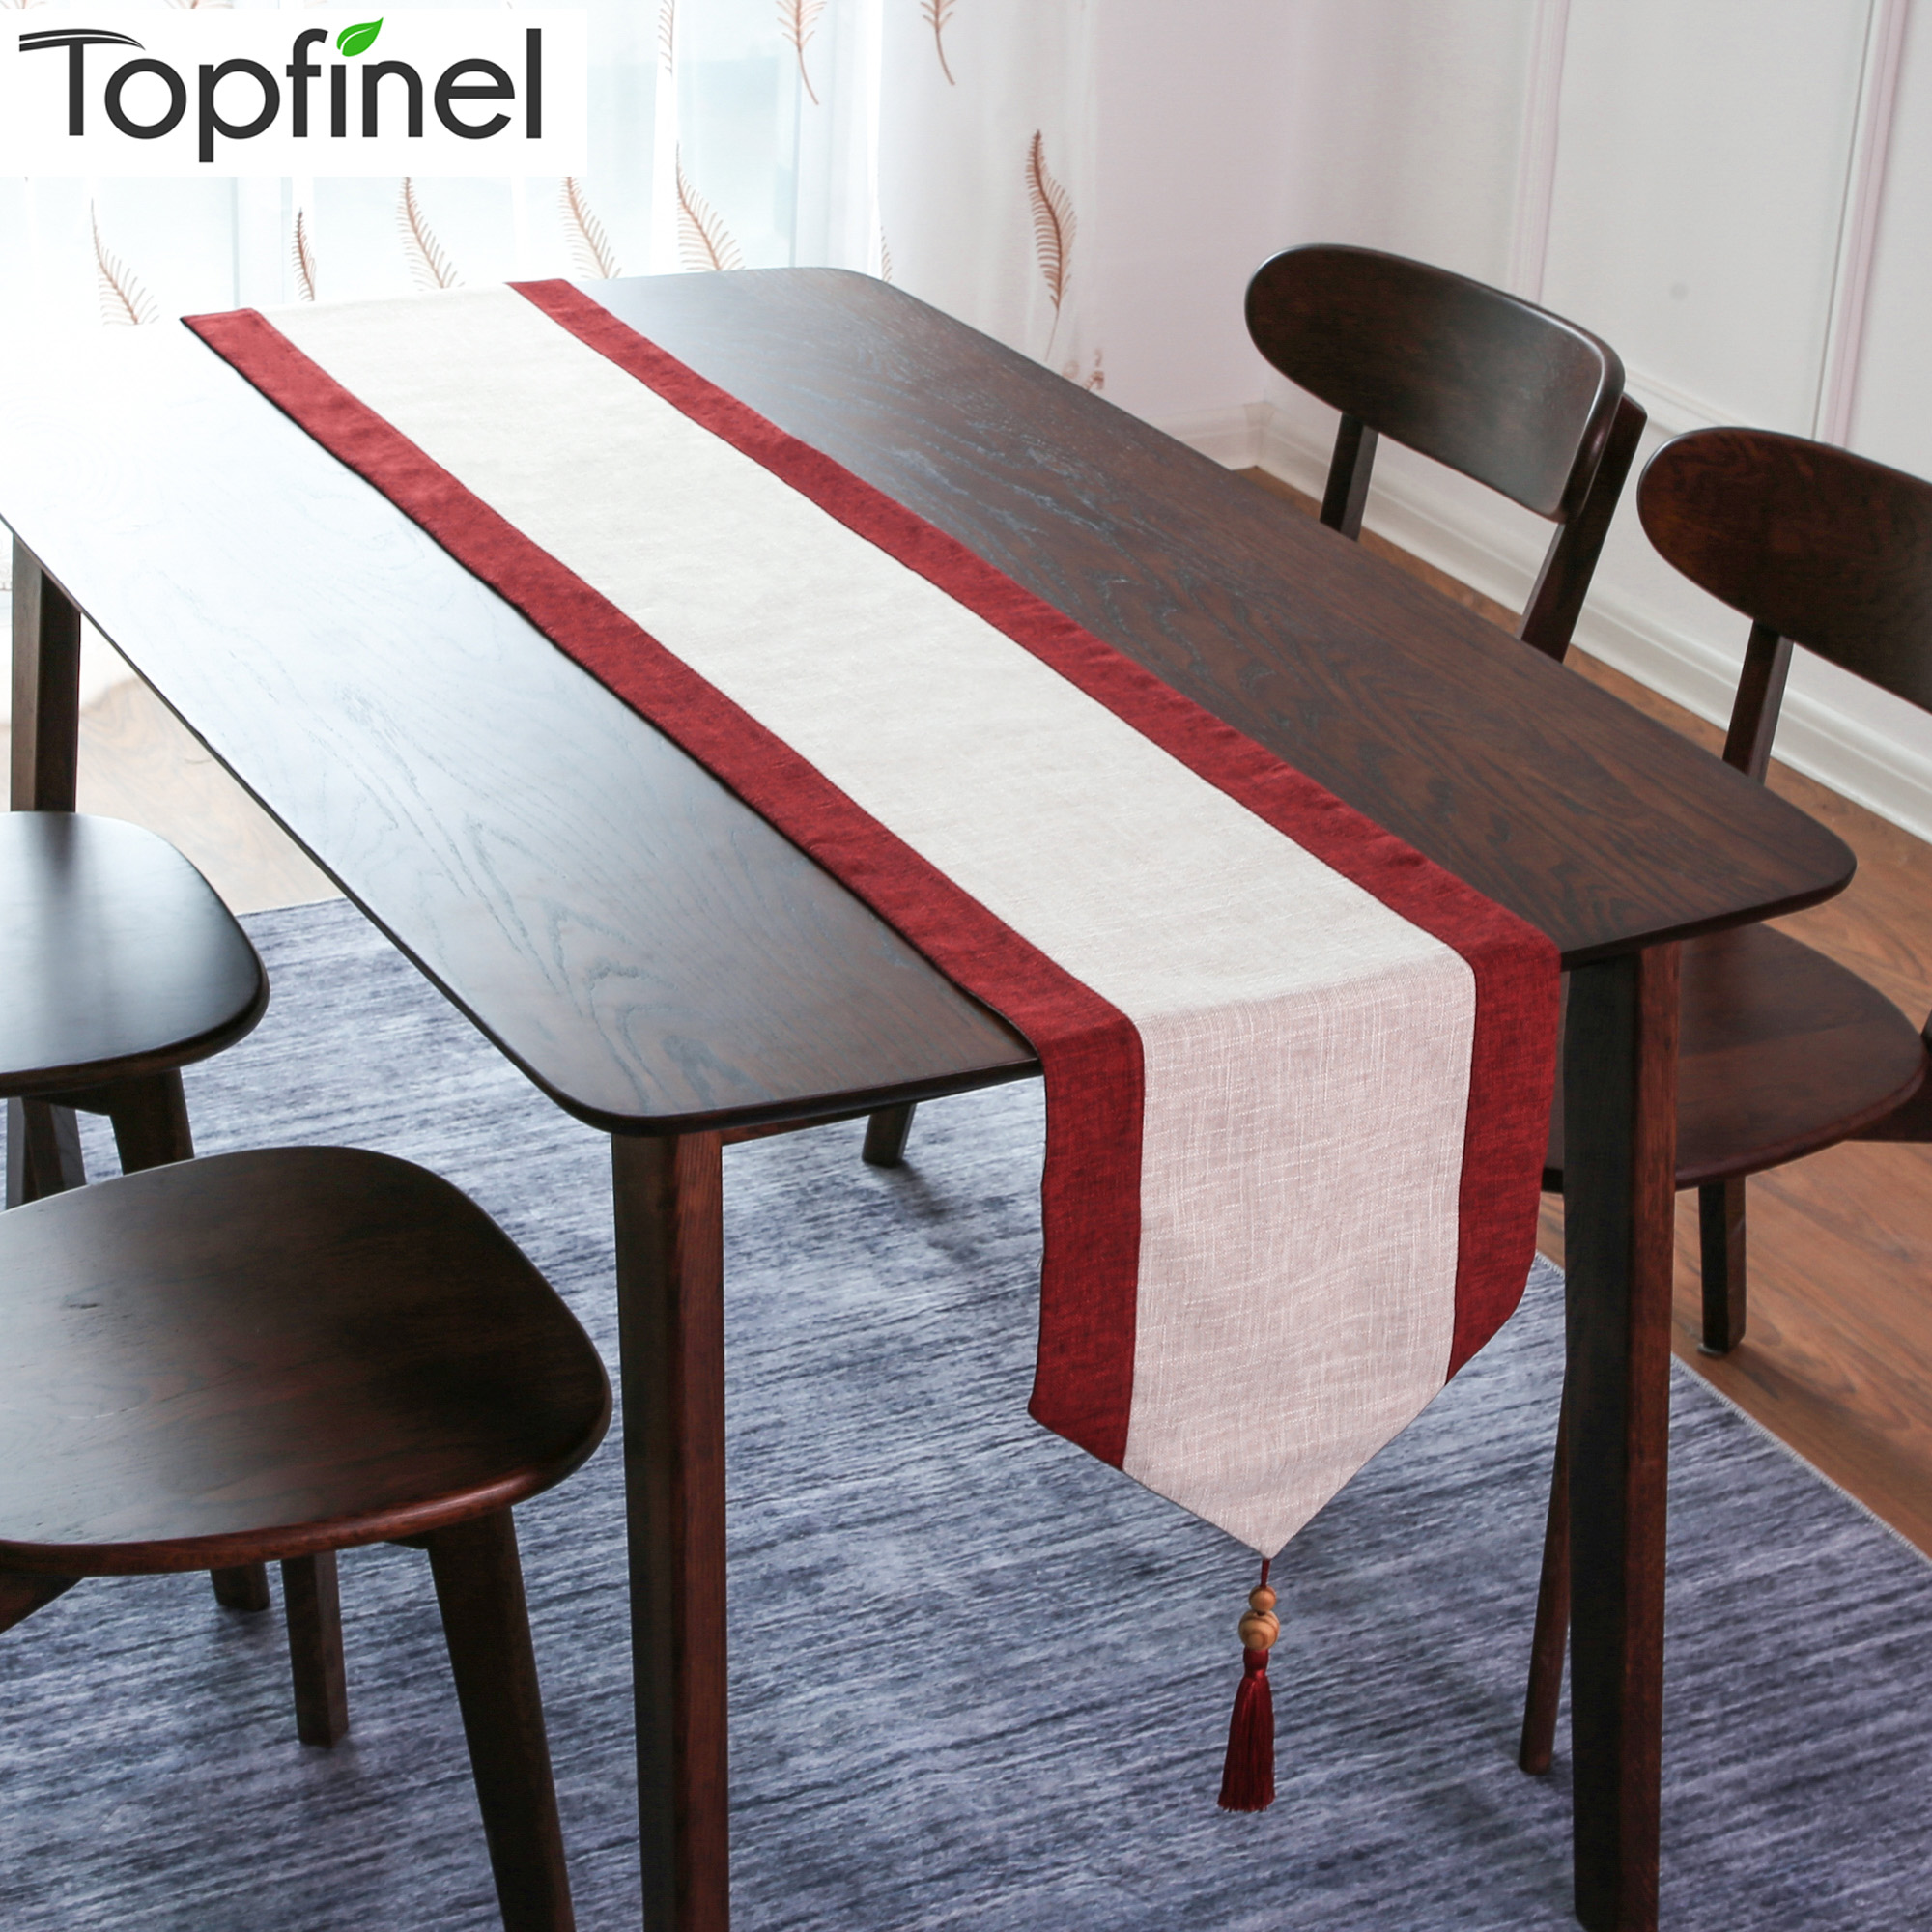 Topfinel Table Runners Cotton Linen Fabric With Tassels Table Top Decoration Home For Dining Room Kitchen Outdoor Wedding Party